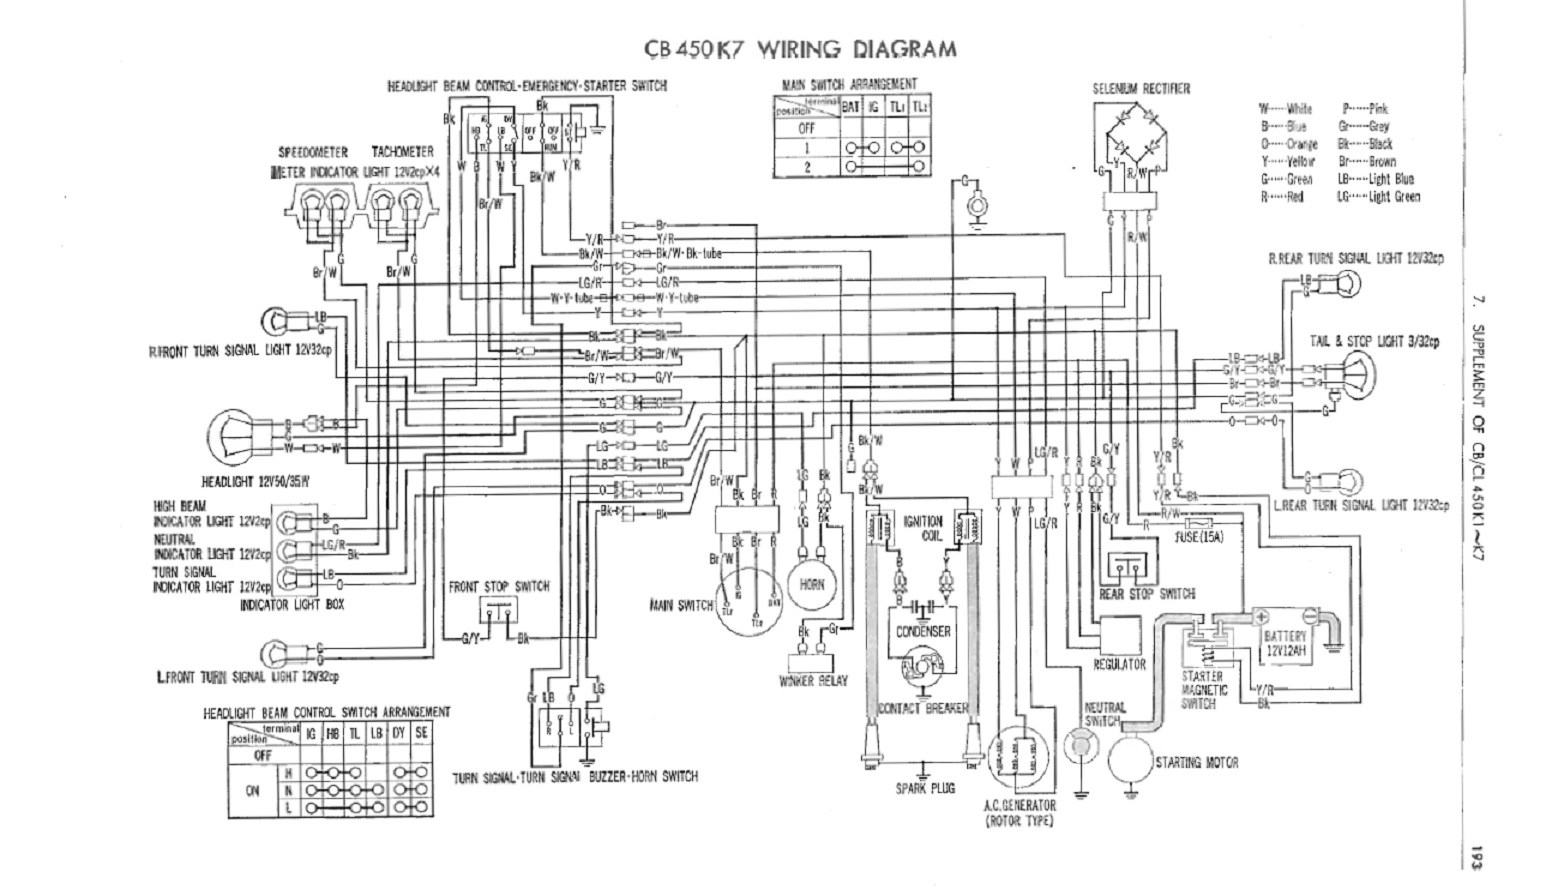 Cb450 Wiring Diagram